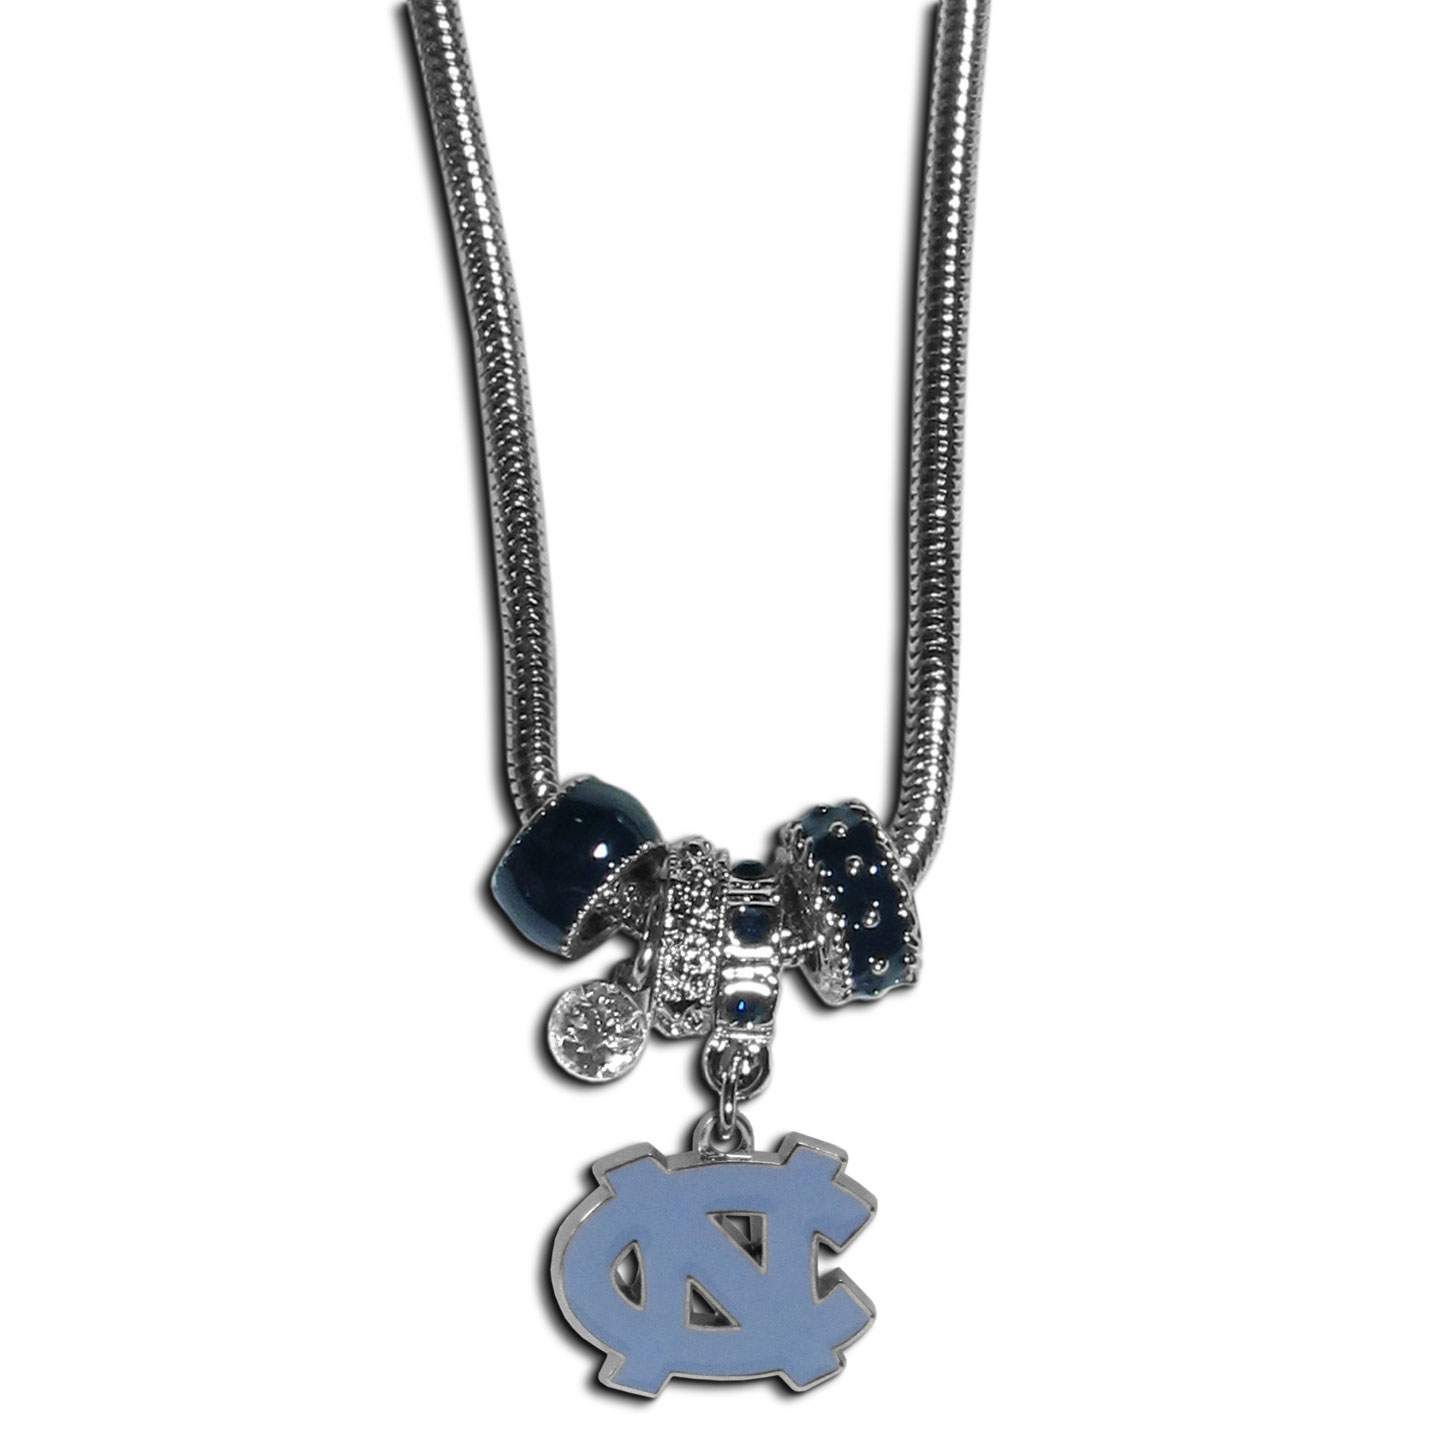 N. Carolina Tar Heels Euro Bead Necklace - We have combined the wildly popular Euro style beads with your favorite team to create our N. Carolina Tar Heels bead necklace. The 18 inch snake chain features 4 Euro beads with enameled team colors and rhinestone accents with a high polish, nickel free charm and rhinestone charm. Perfect way to show off your team pride.